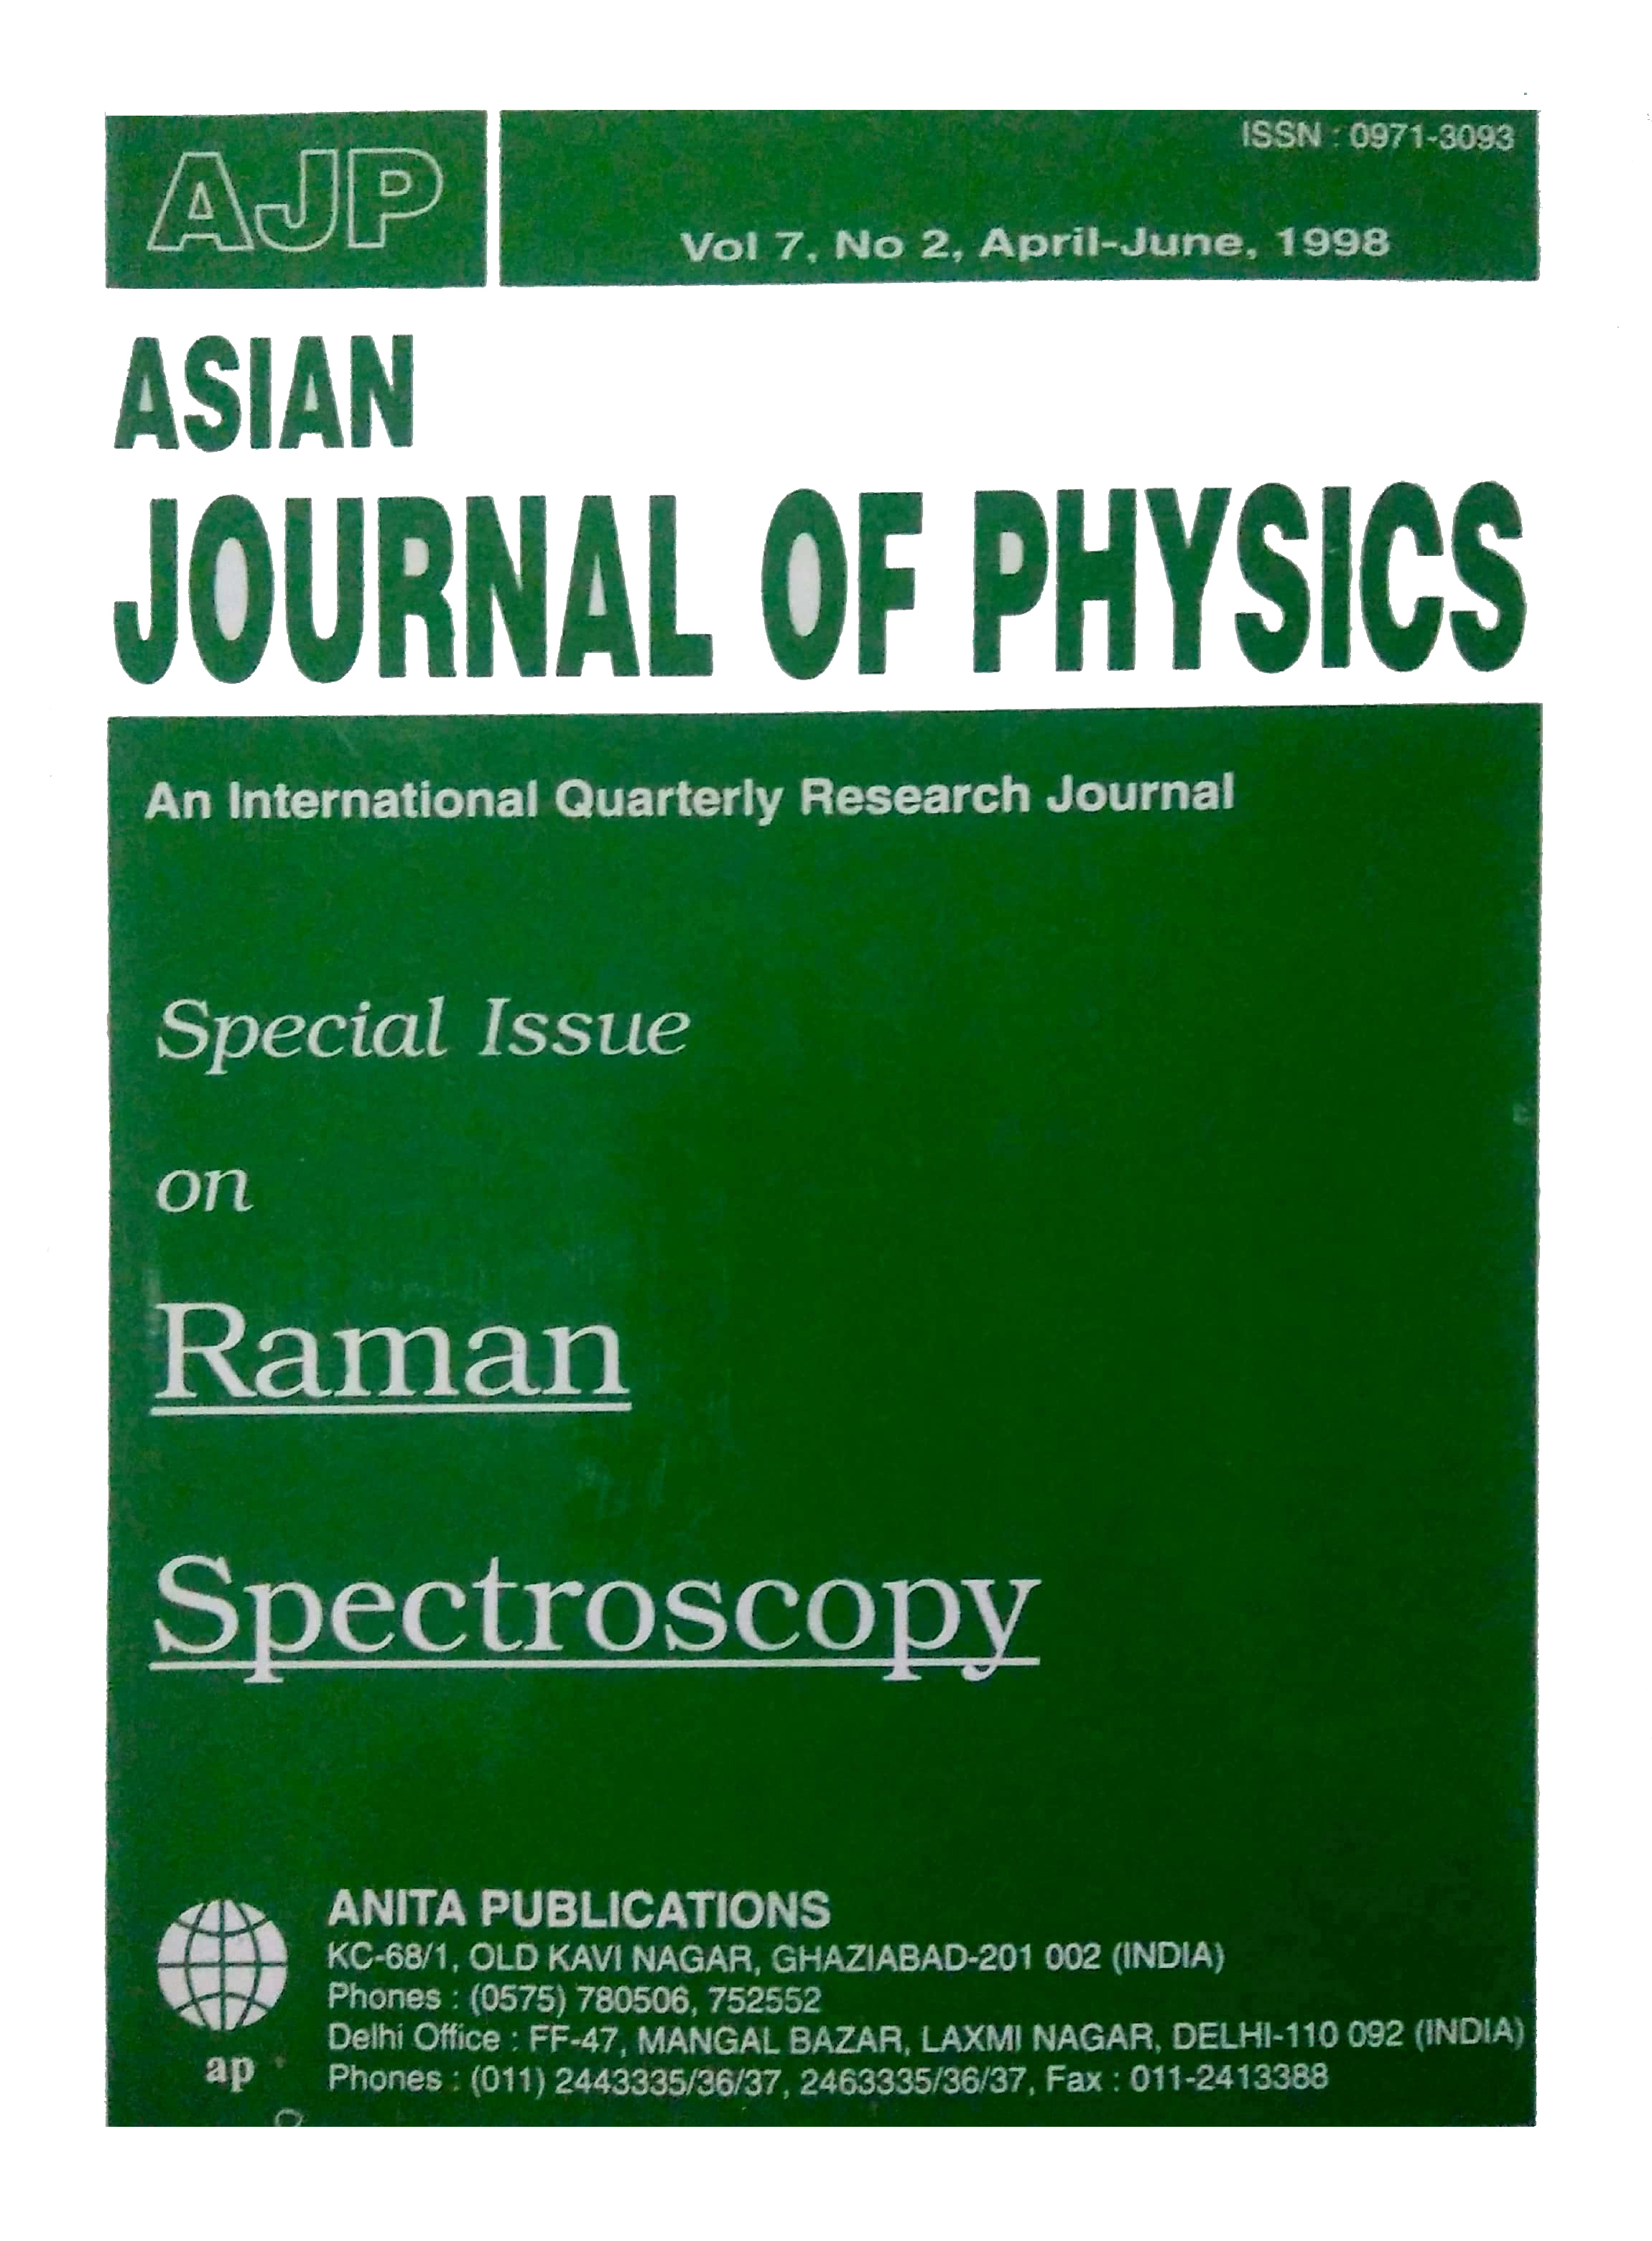 AJP Vol 7 No 2, 1998